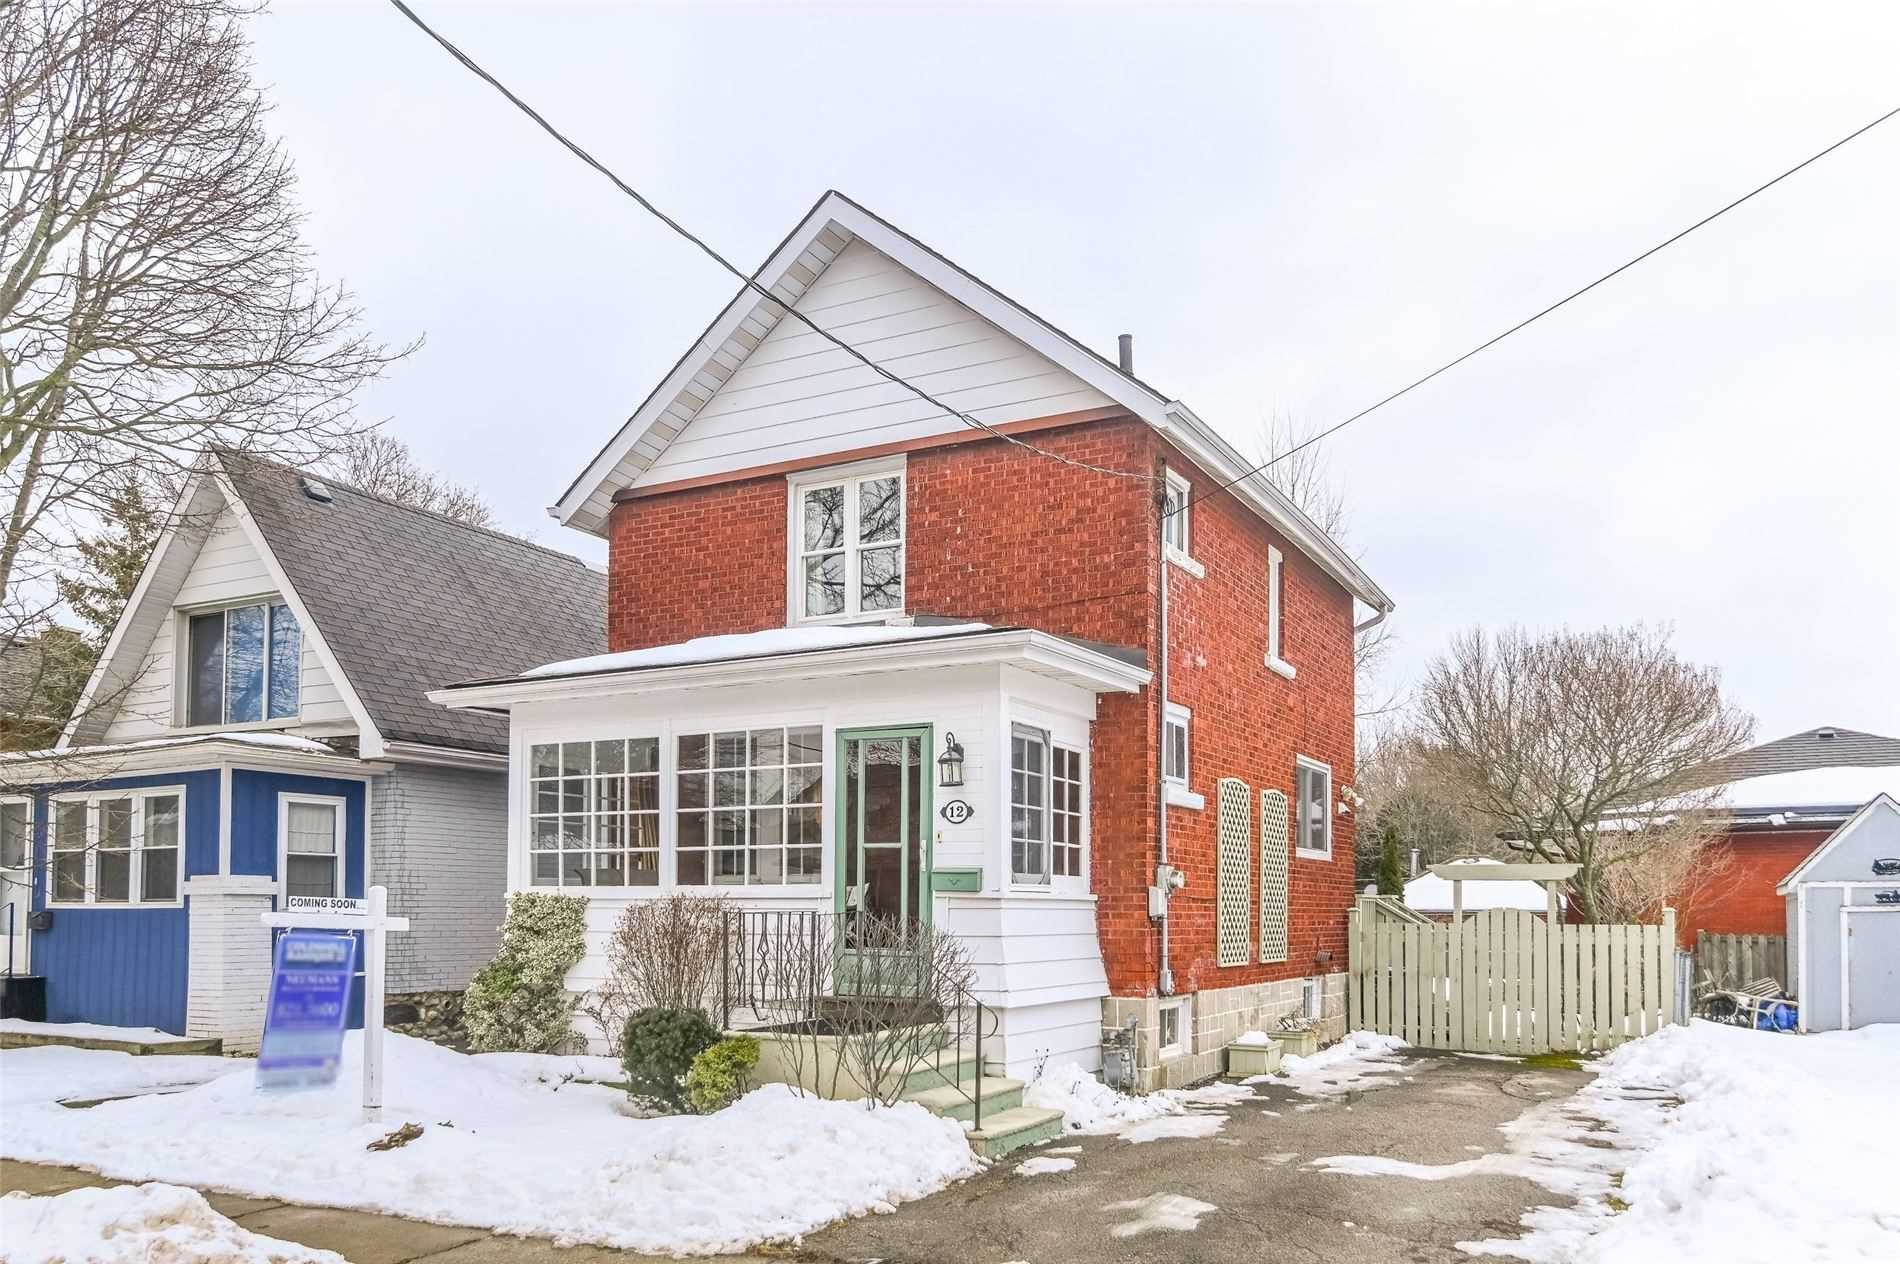 pictures of house for sale MLS: X4702544 located at 12 Bagot St, Guelph N1H5S9